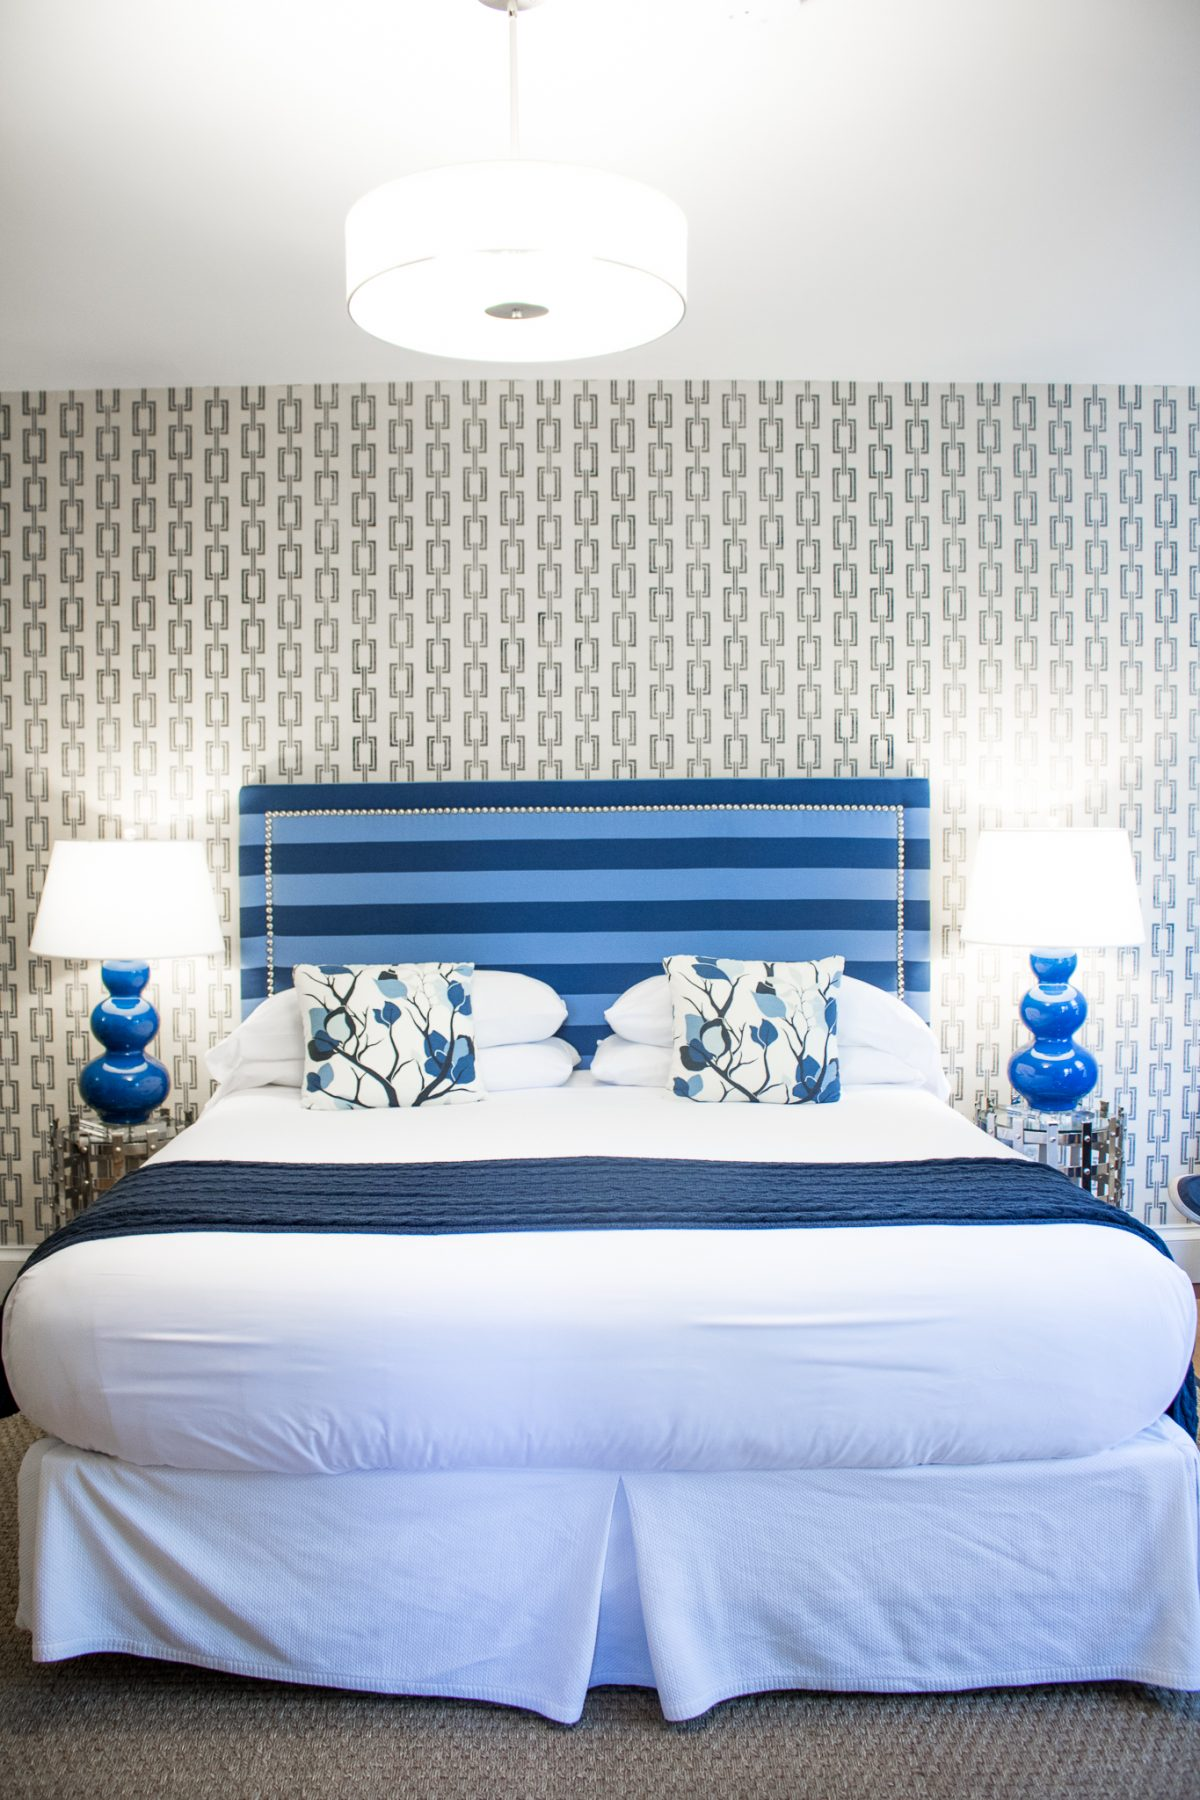 76 Main Nantucket Boutique Hotel Review